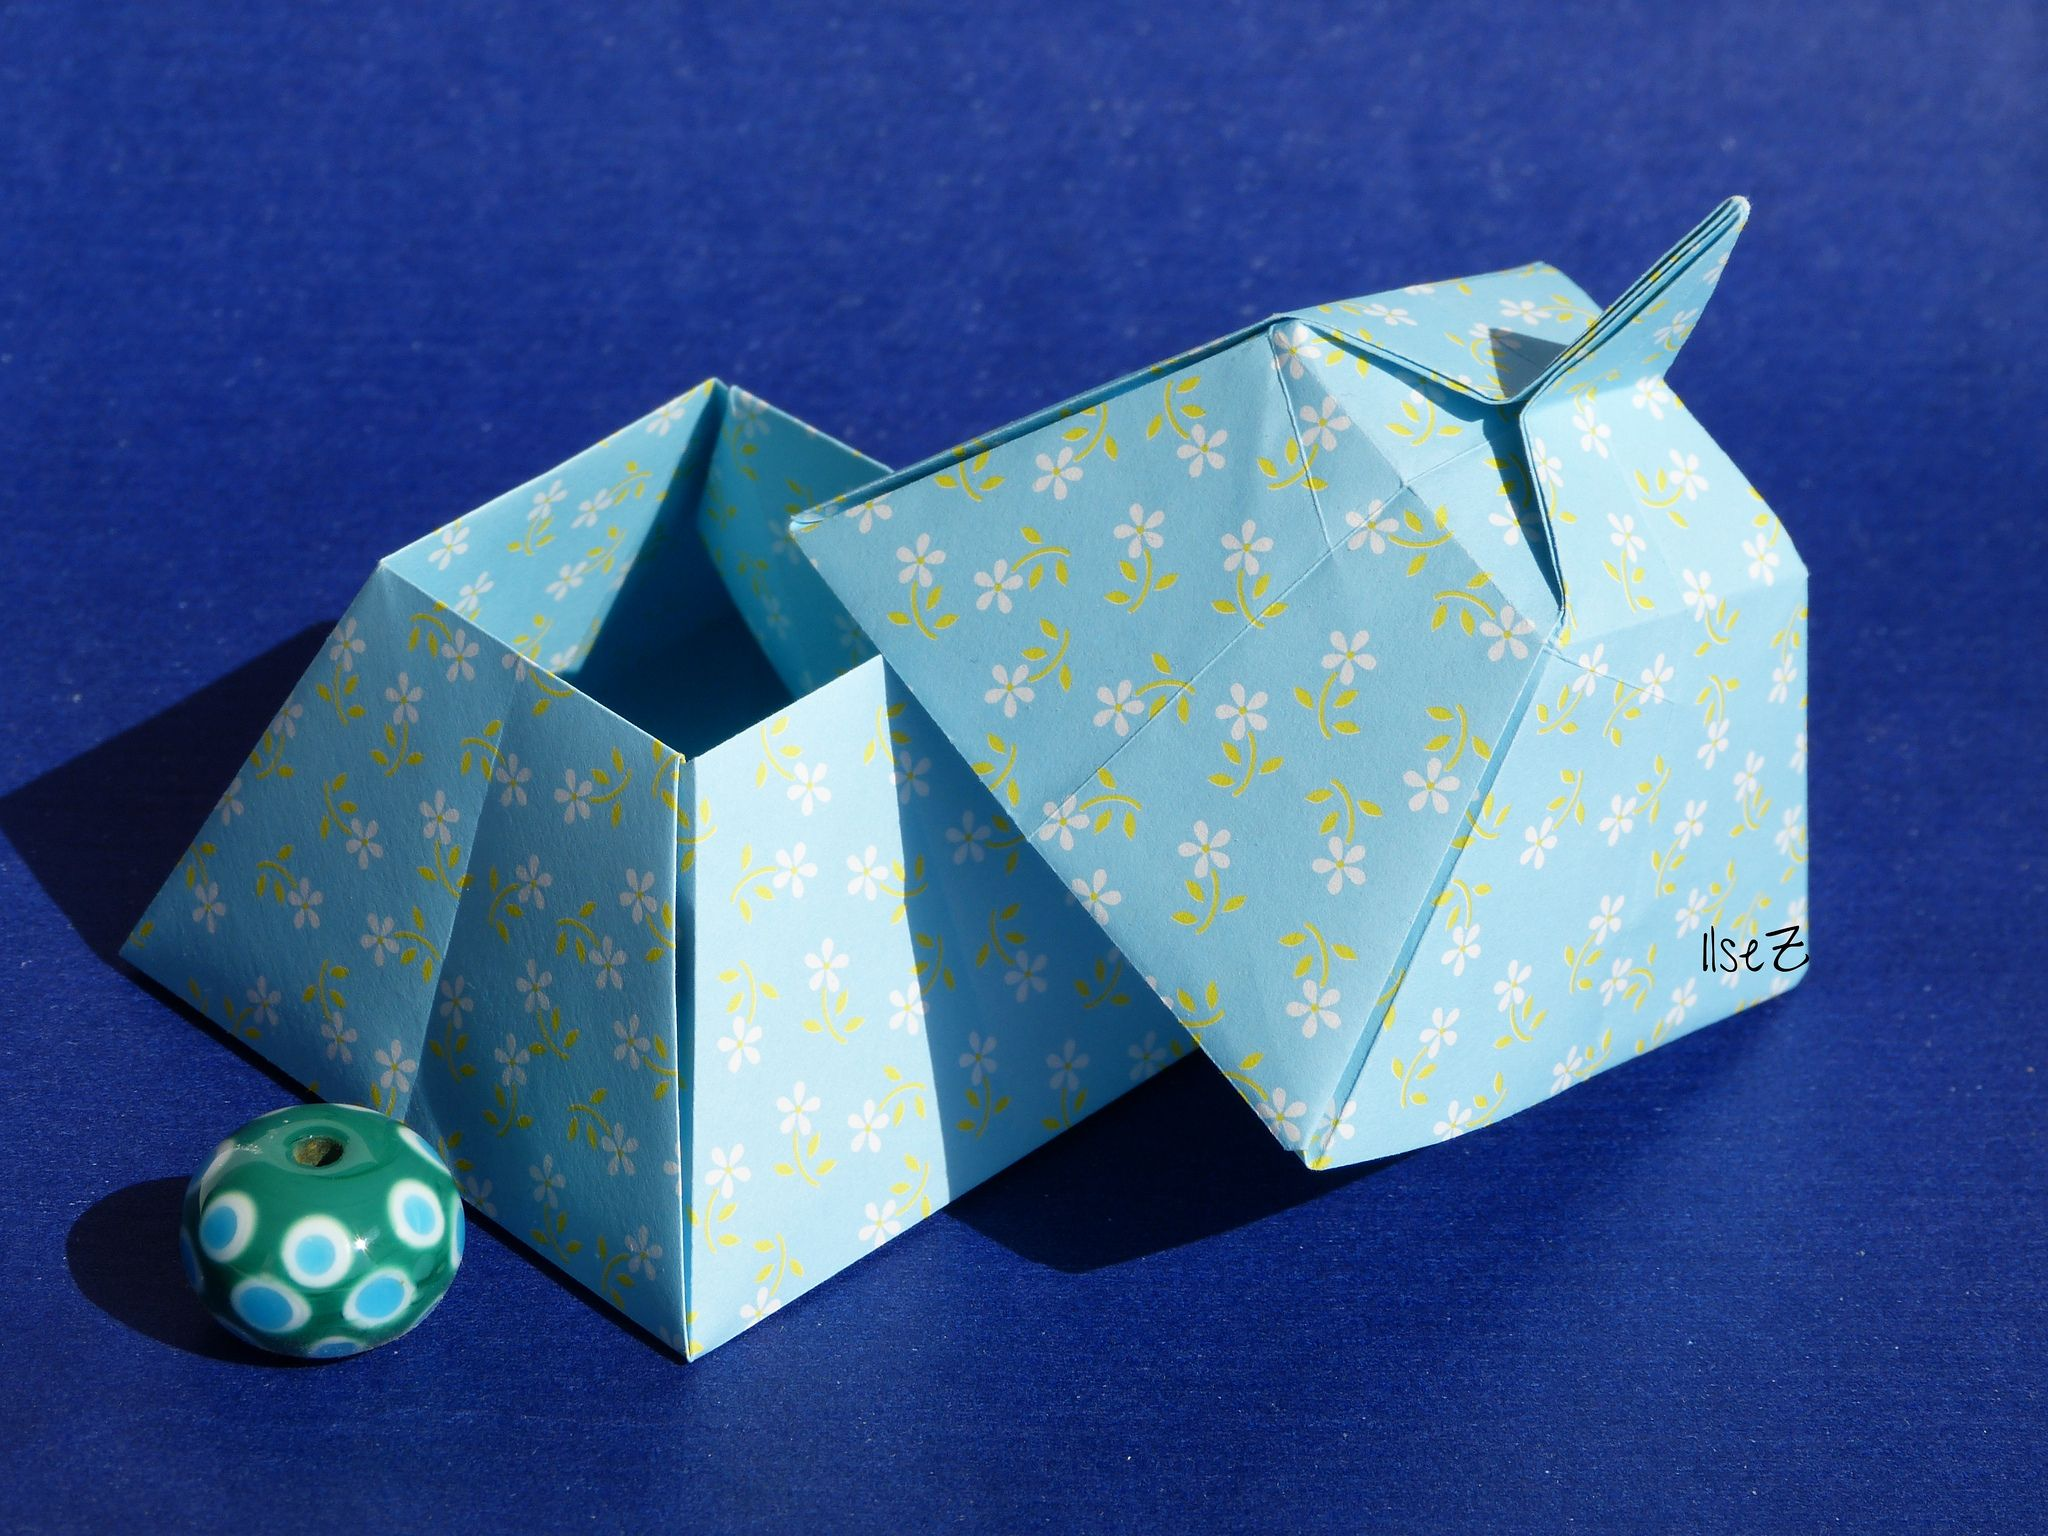 hight resolution of origami pyramid box by tomoko fuse